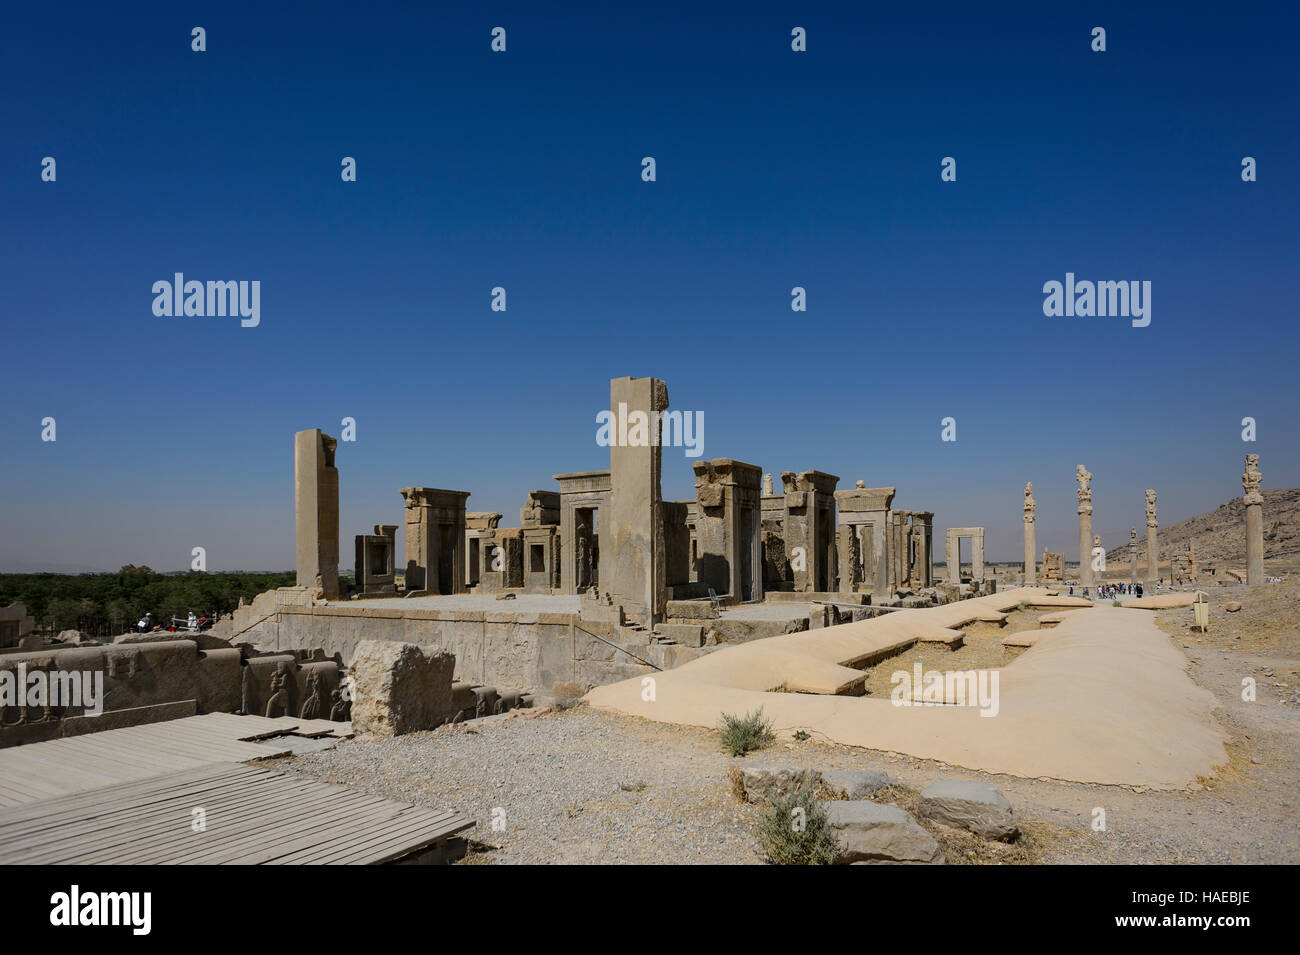 Persepolis, Iran Photo Stock